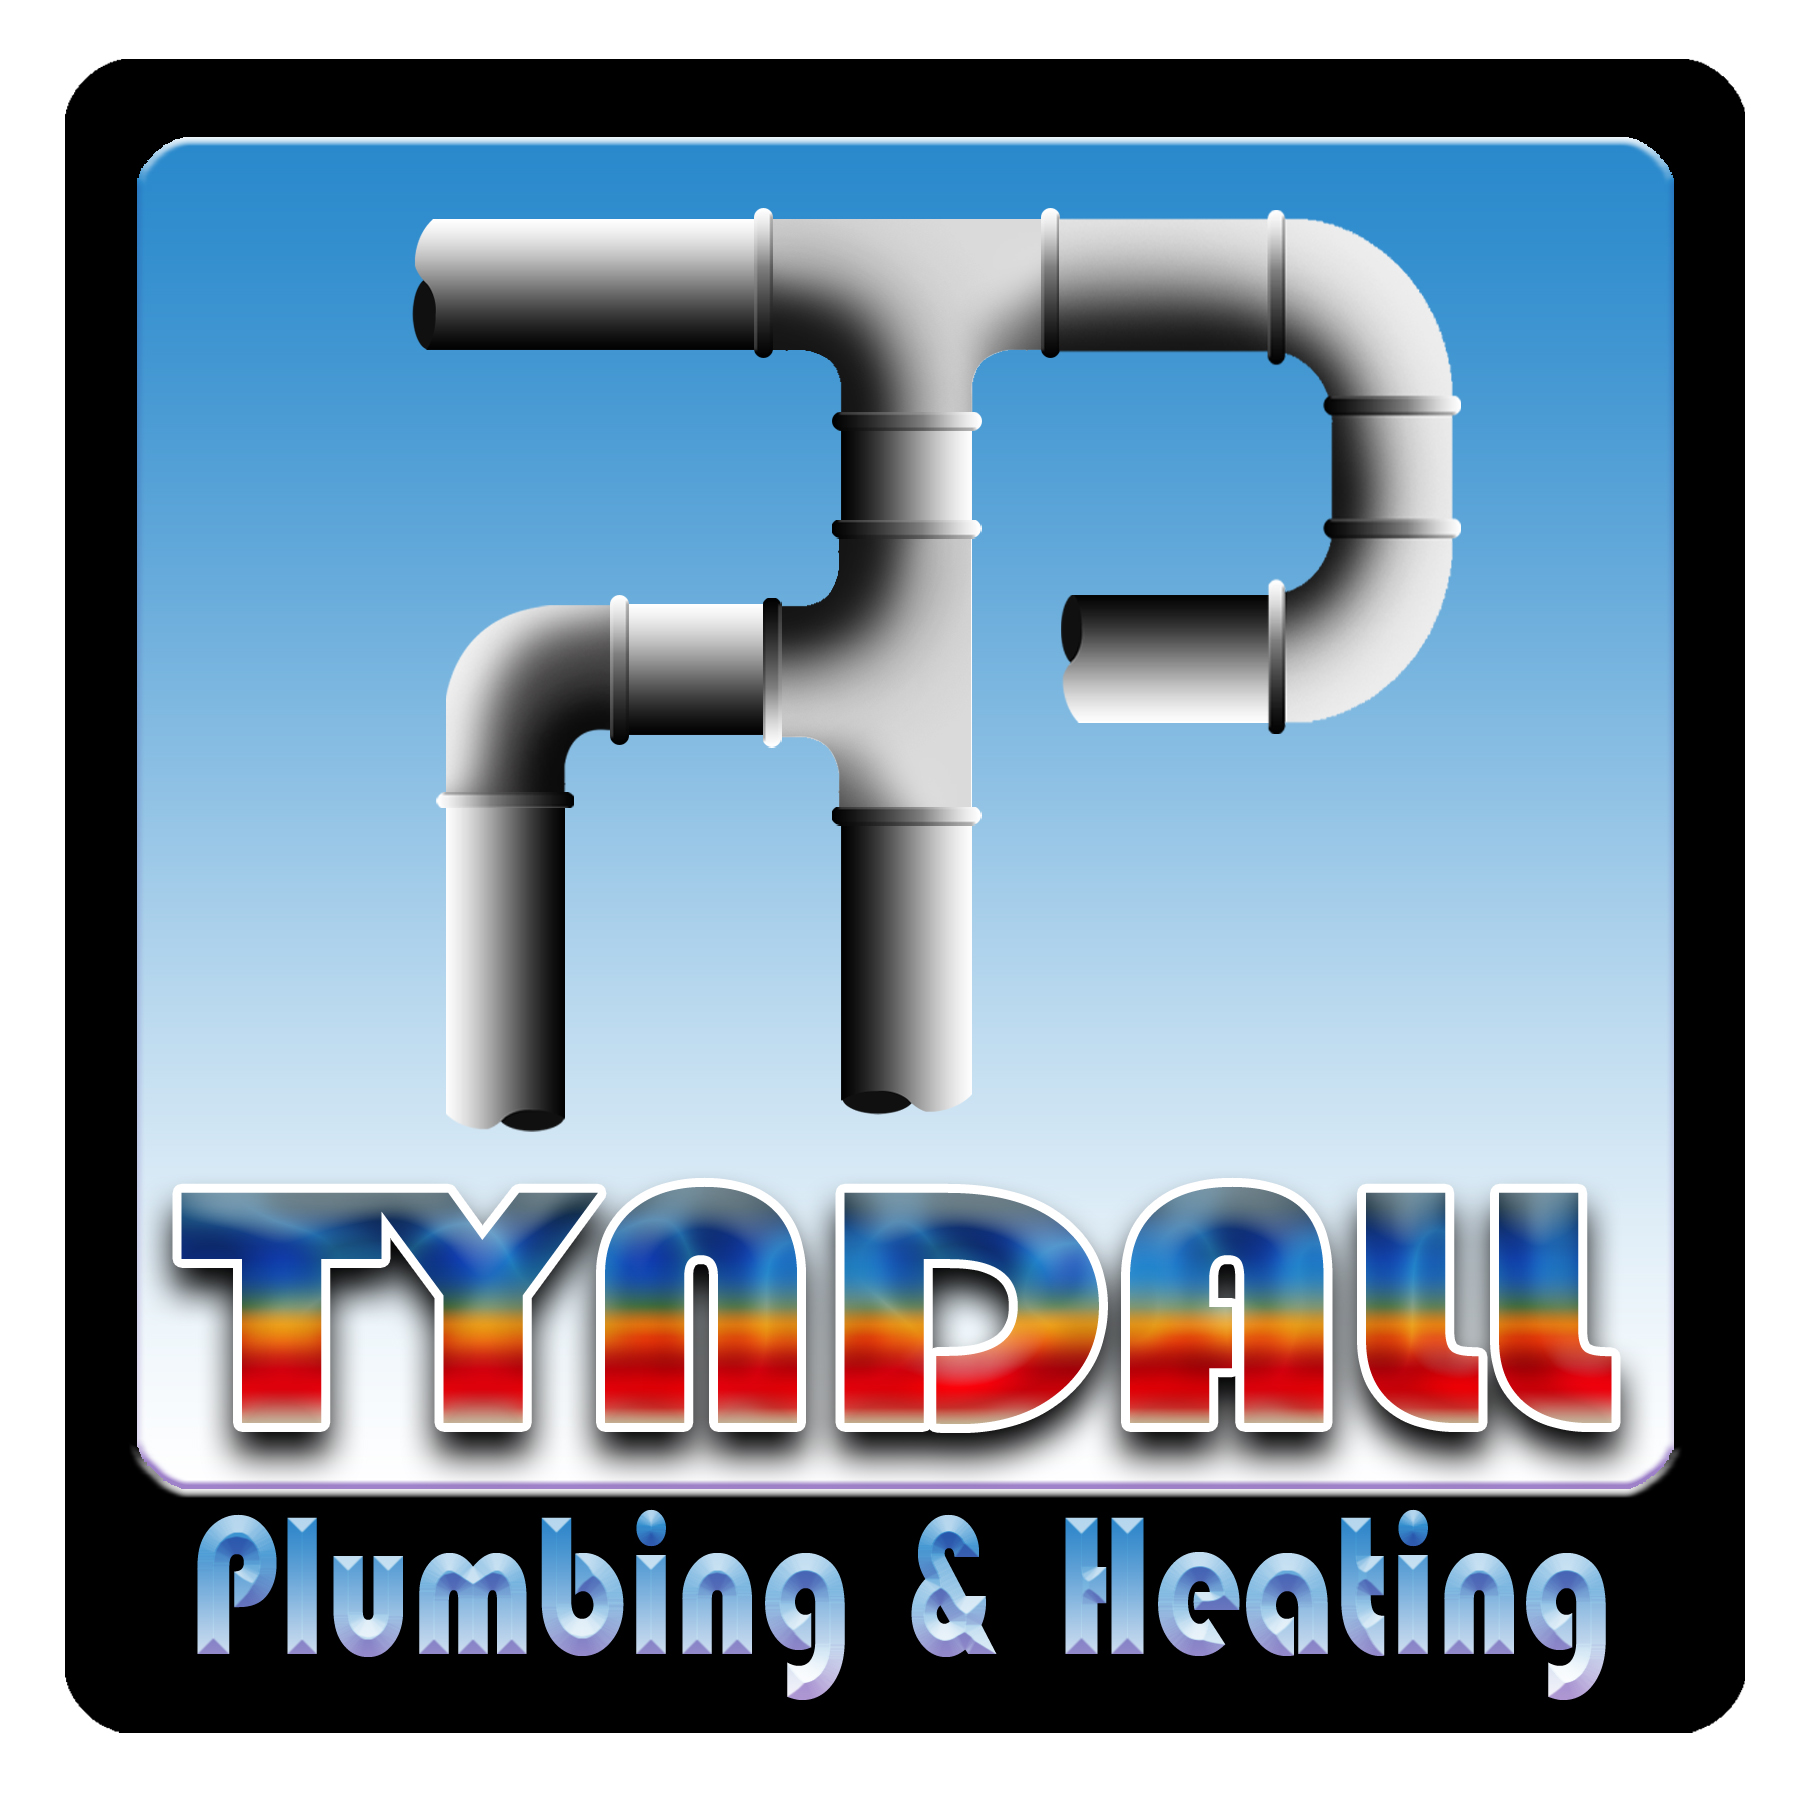 Logo Design by Kitz Malinao - Entry No. 27 in the Logo Design Contest Imaginative Logo Design for Tyndall Plumbing & Heating.